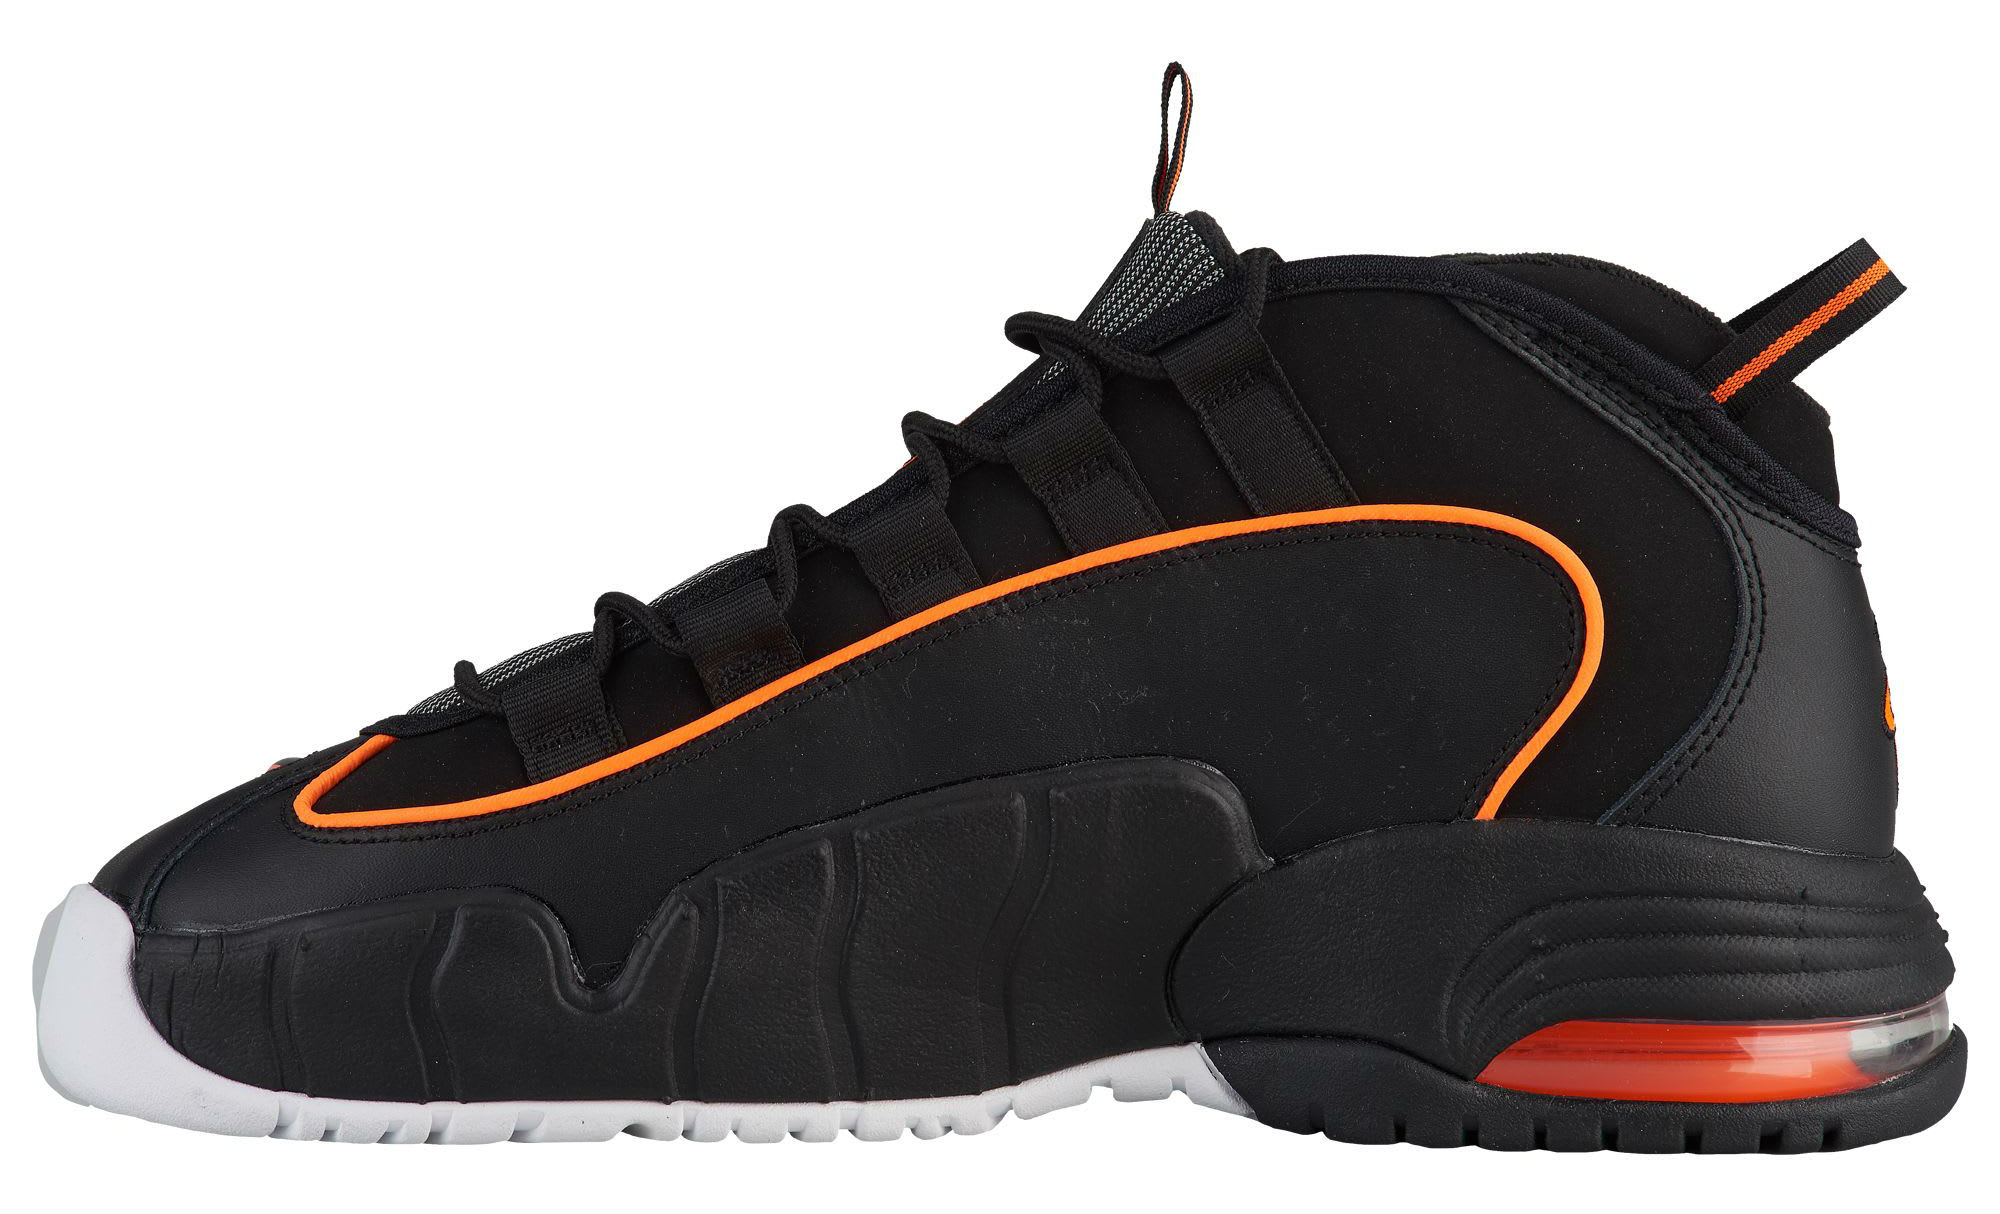 Nike Air Max Penny 1 Black Total Orange White Release Date 685153-002 Medial